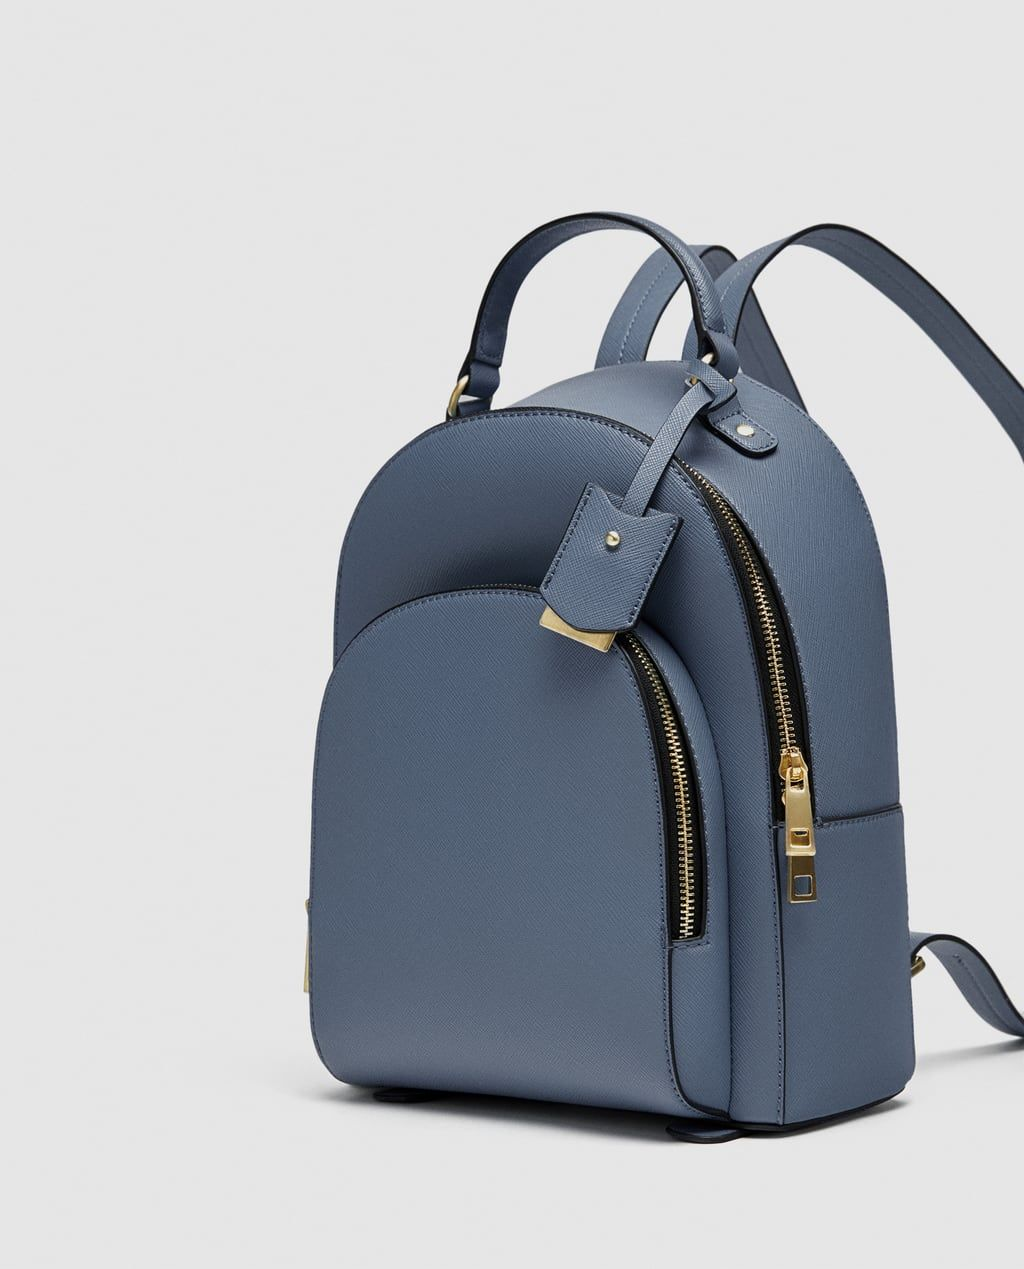 Blue Backpack with Gold Zippers from Zara  b7d6d019f1a